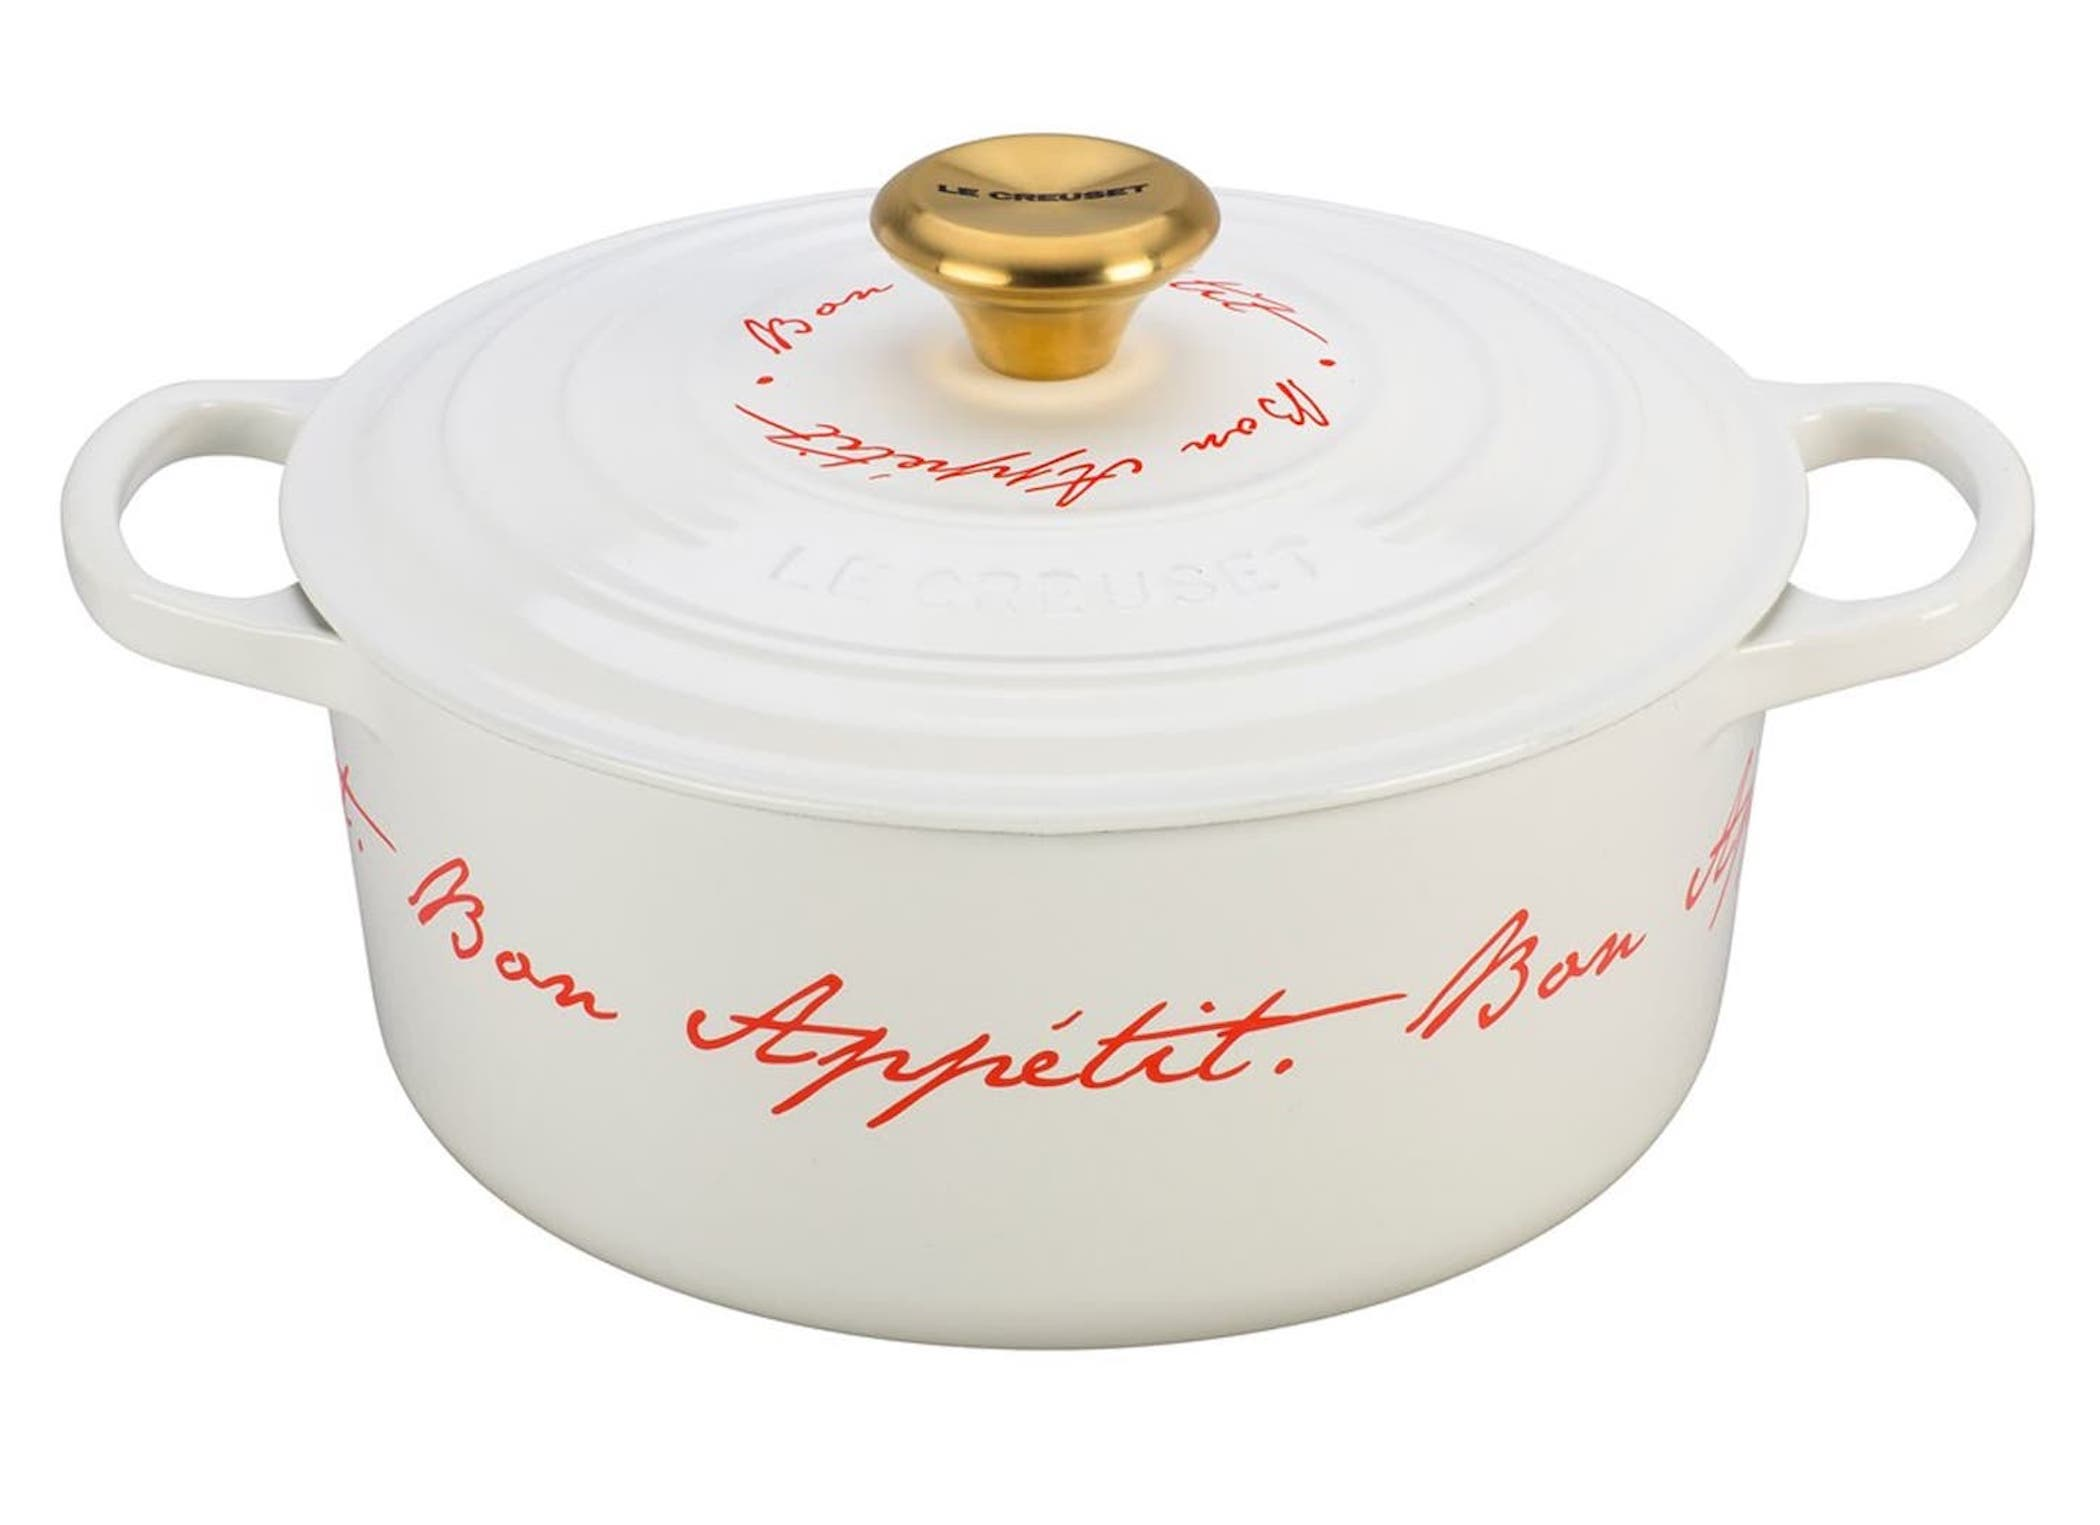 Le Creuset Bon Appétit Dutch Oven May Five Friday Finds from France